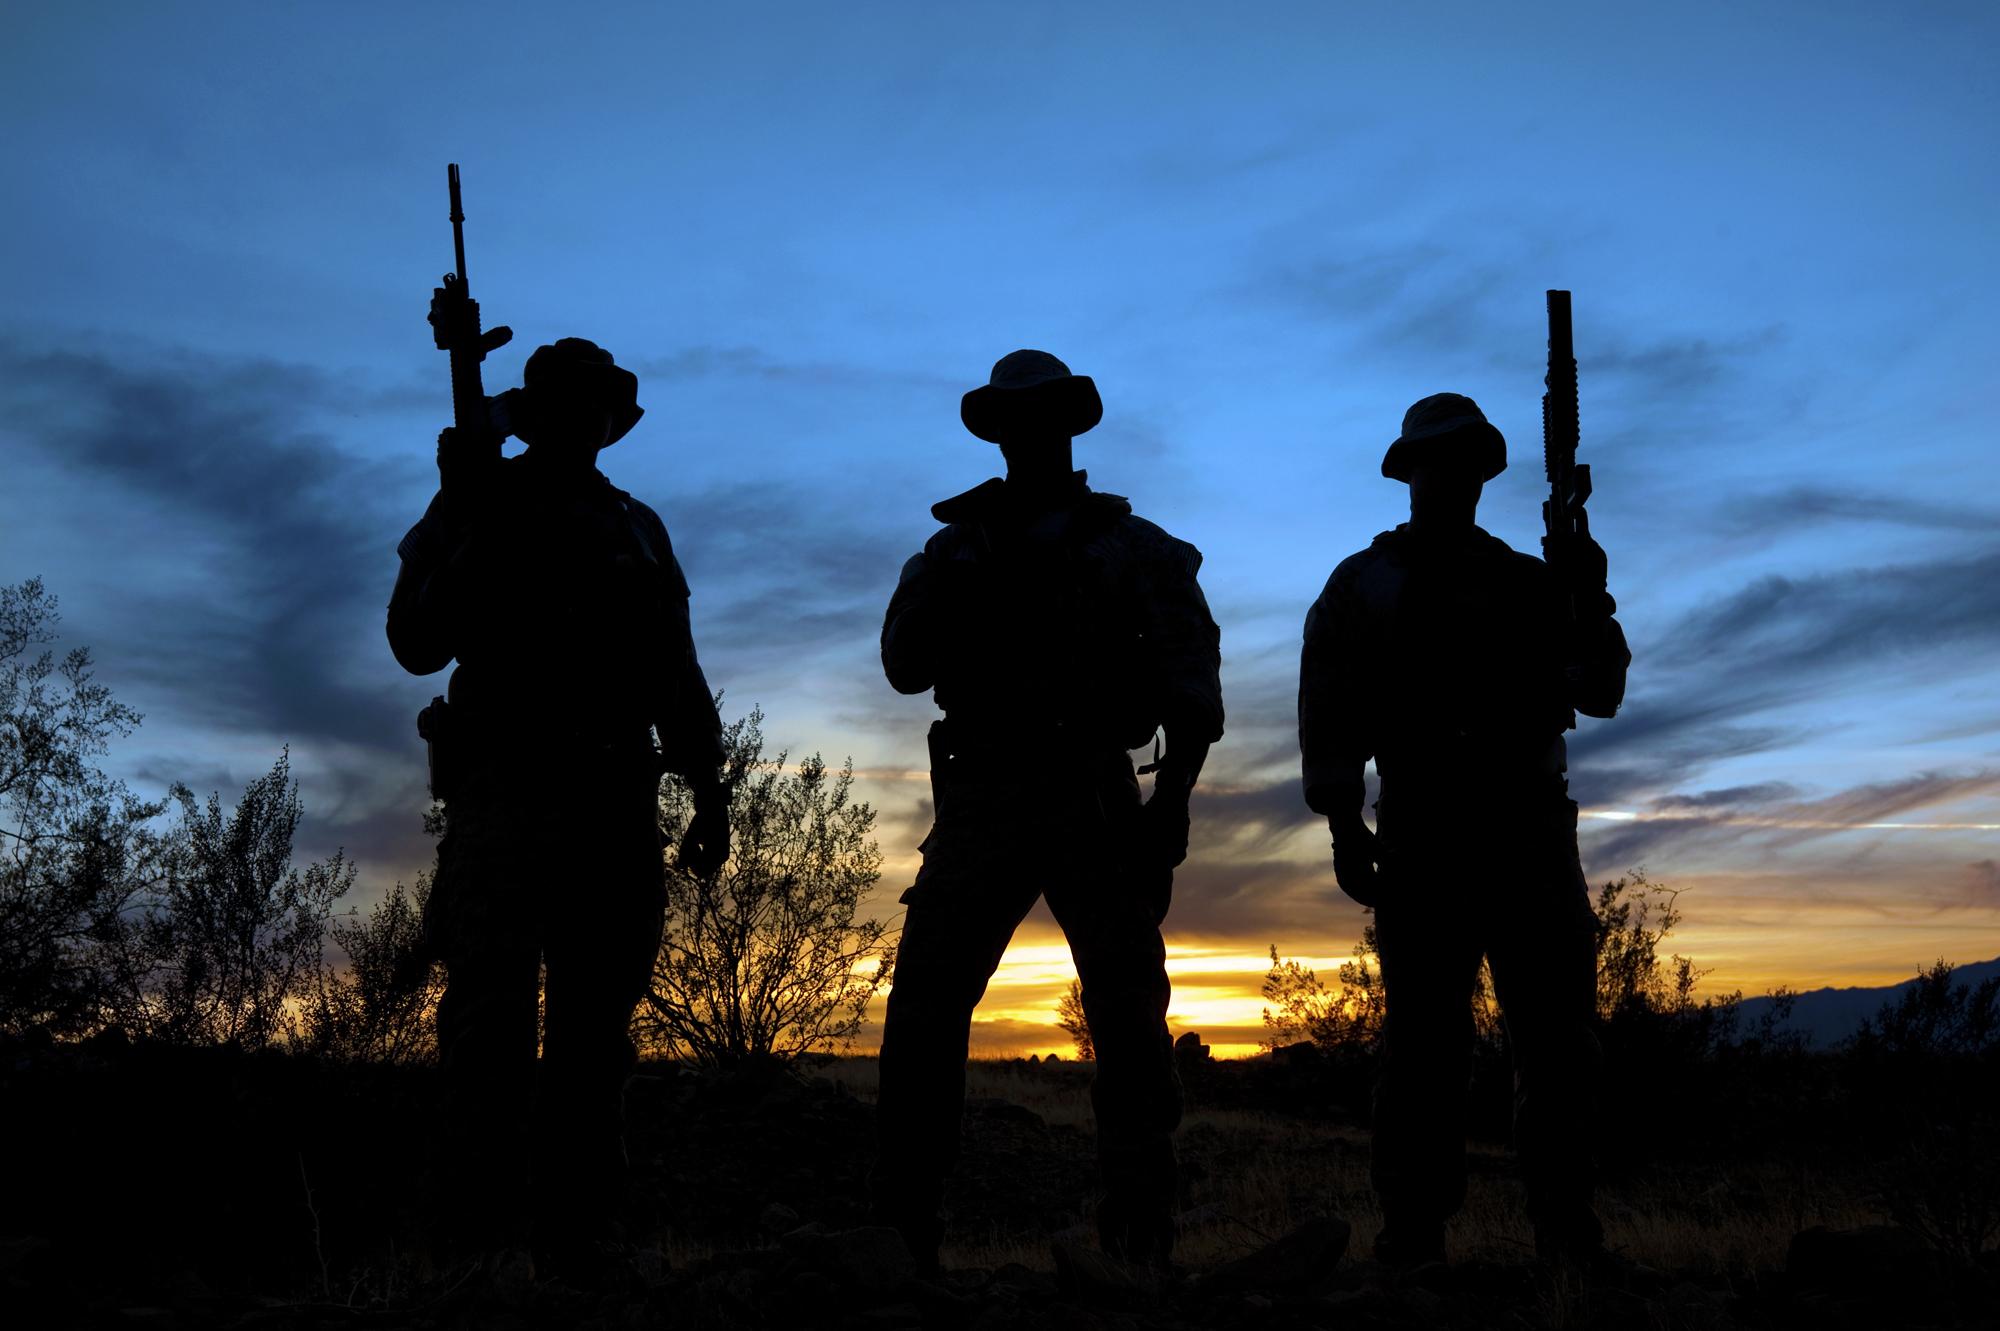 A personal recount about the seal training in the united states